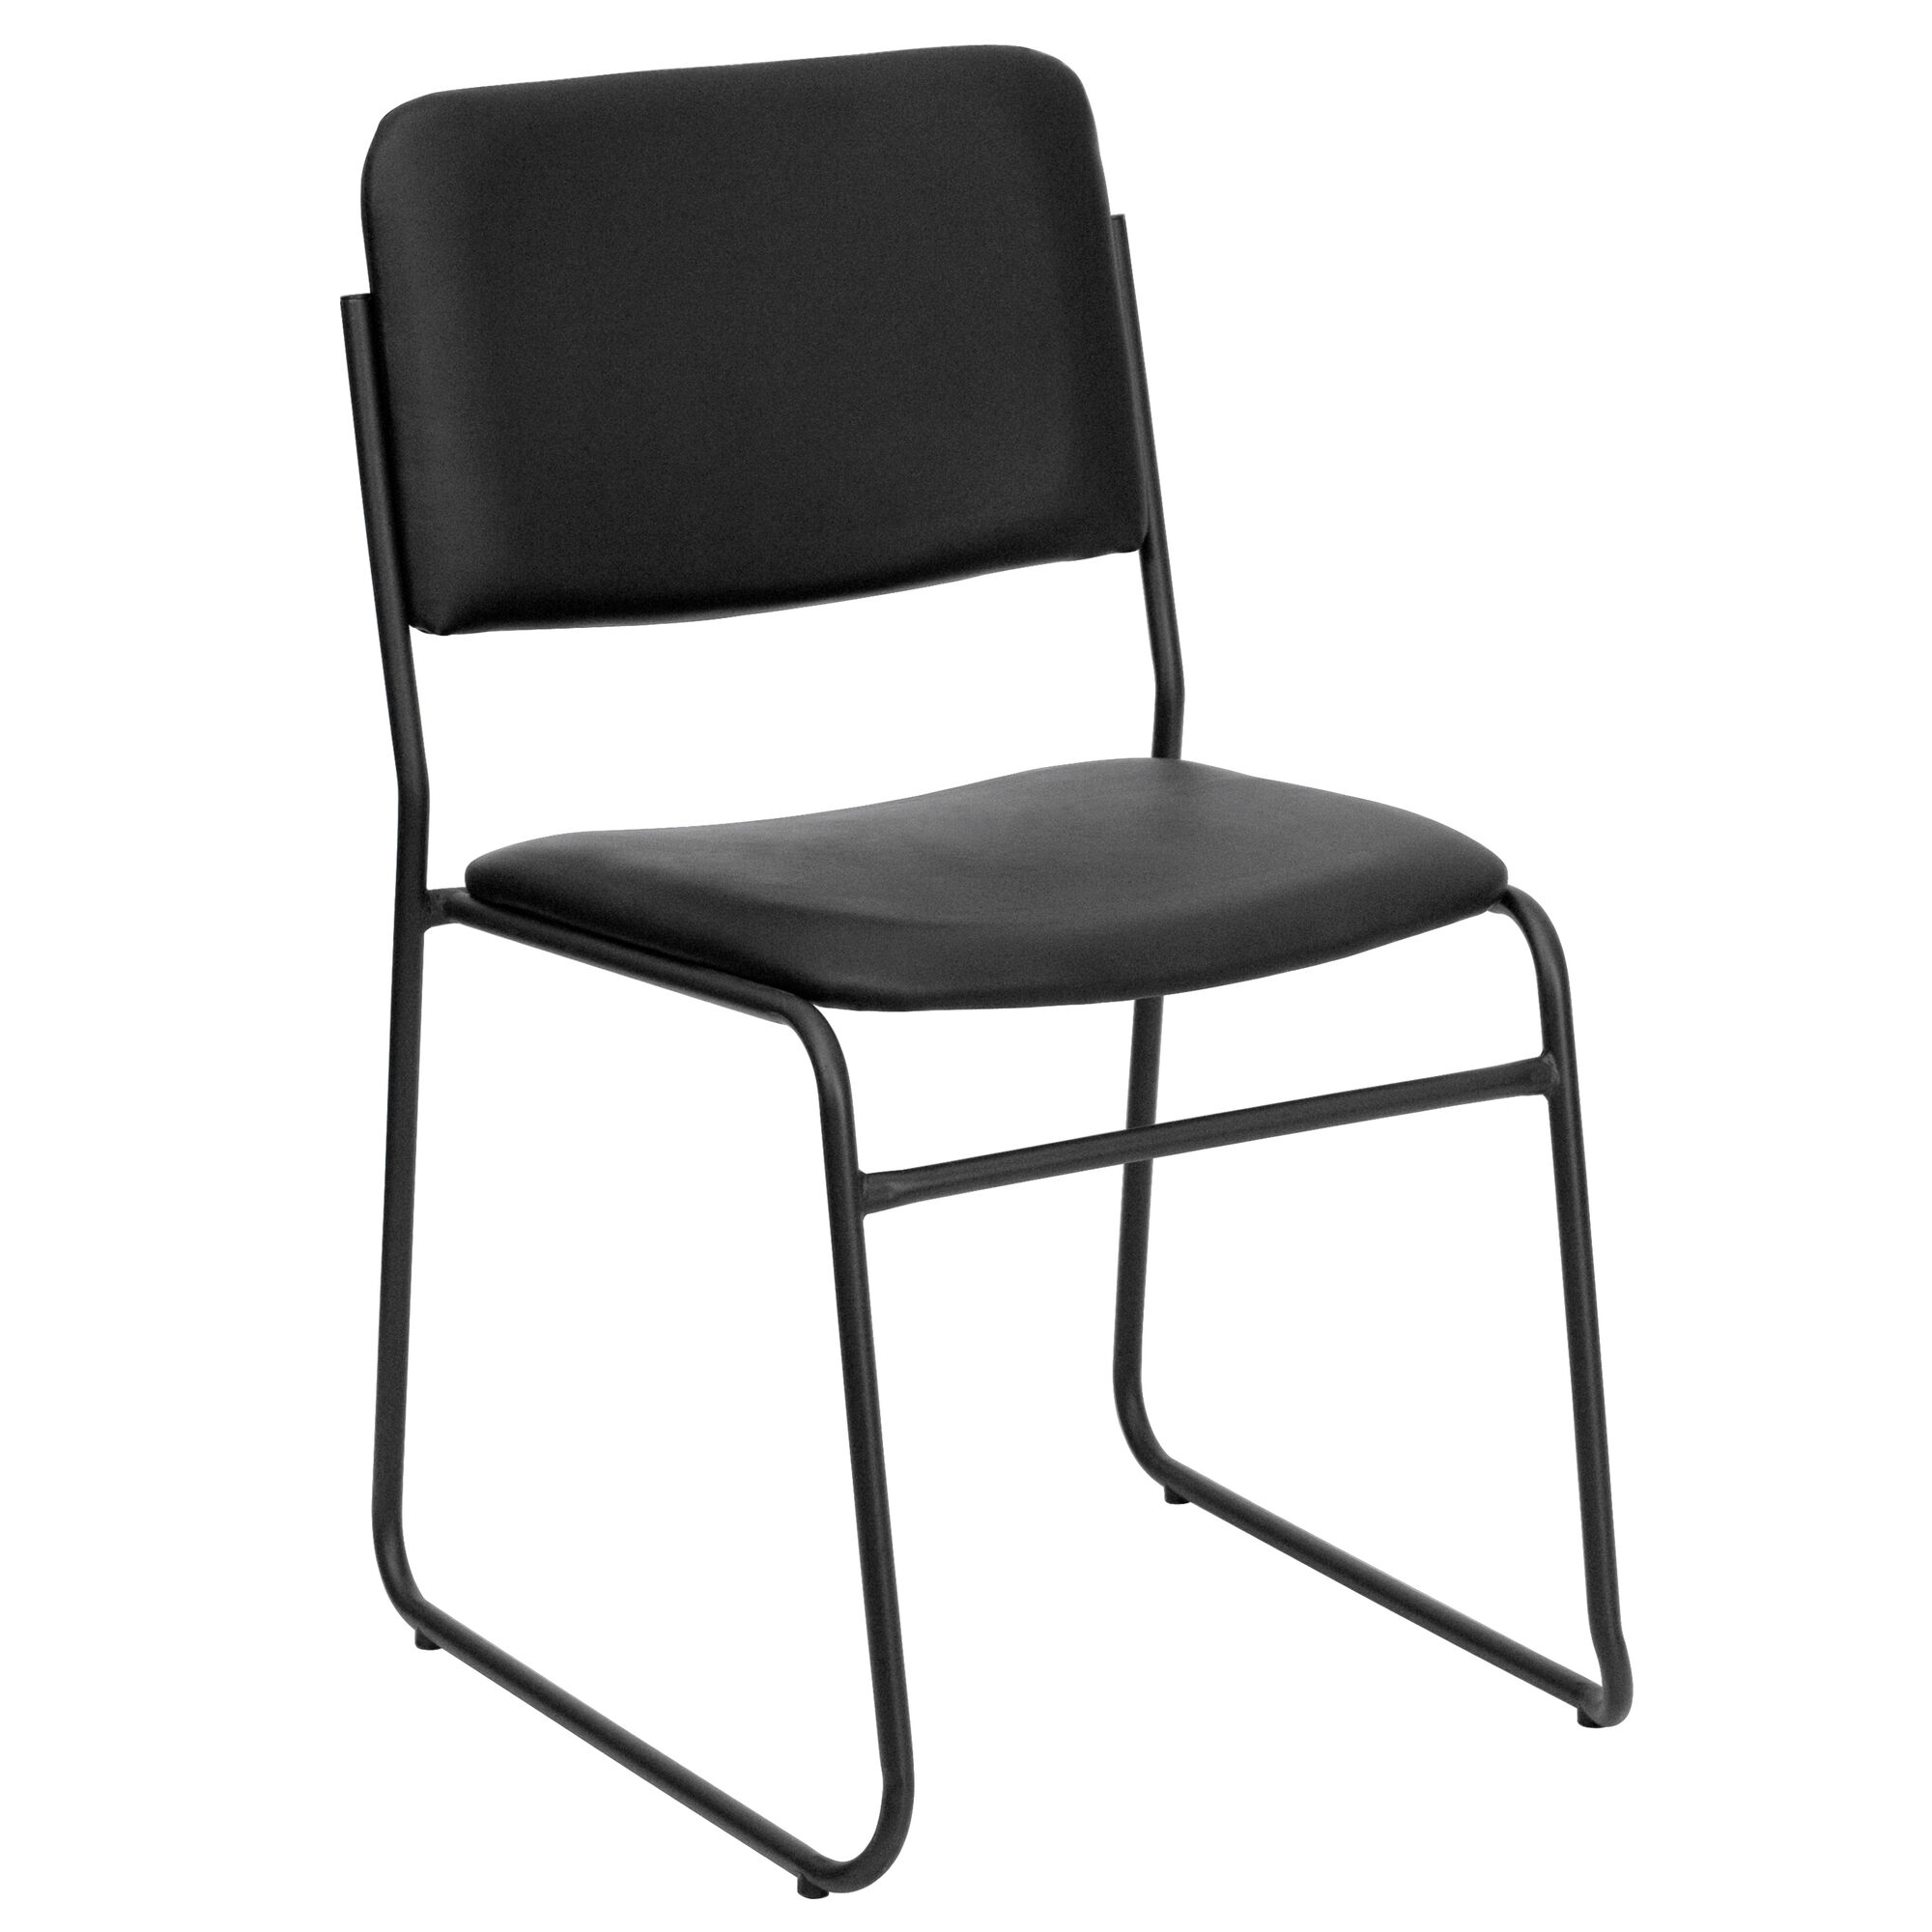 fice Reception Seating Side Chairs at low bud prices